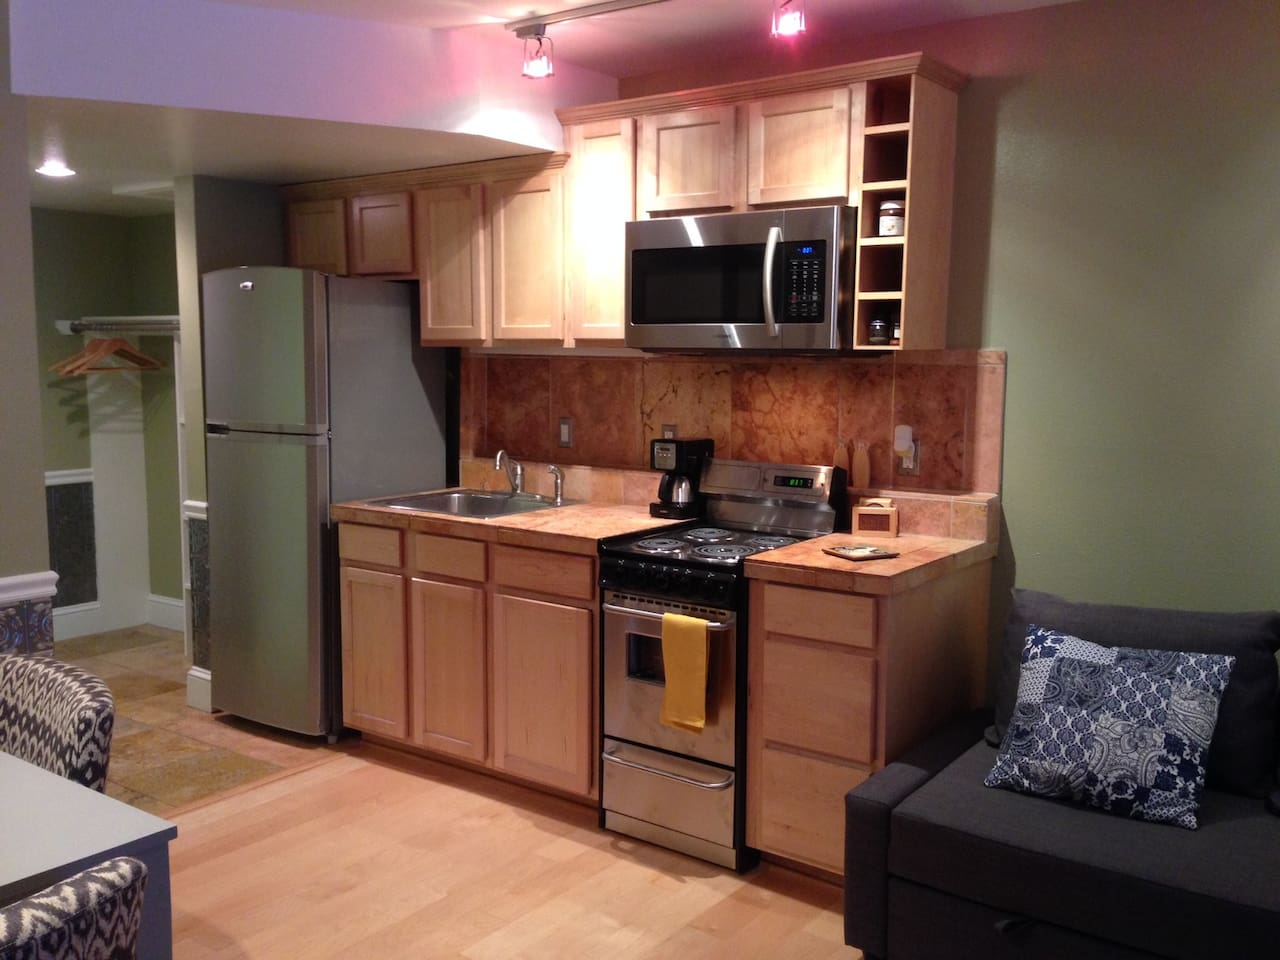 Kitchen with stove/oven, microwave, fridge